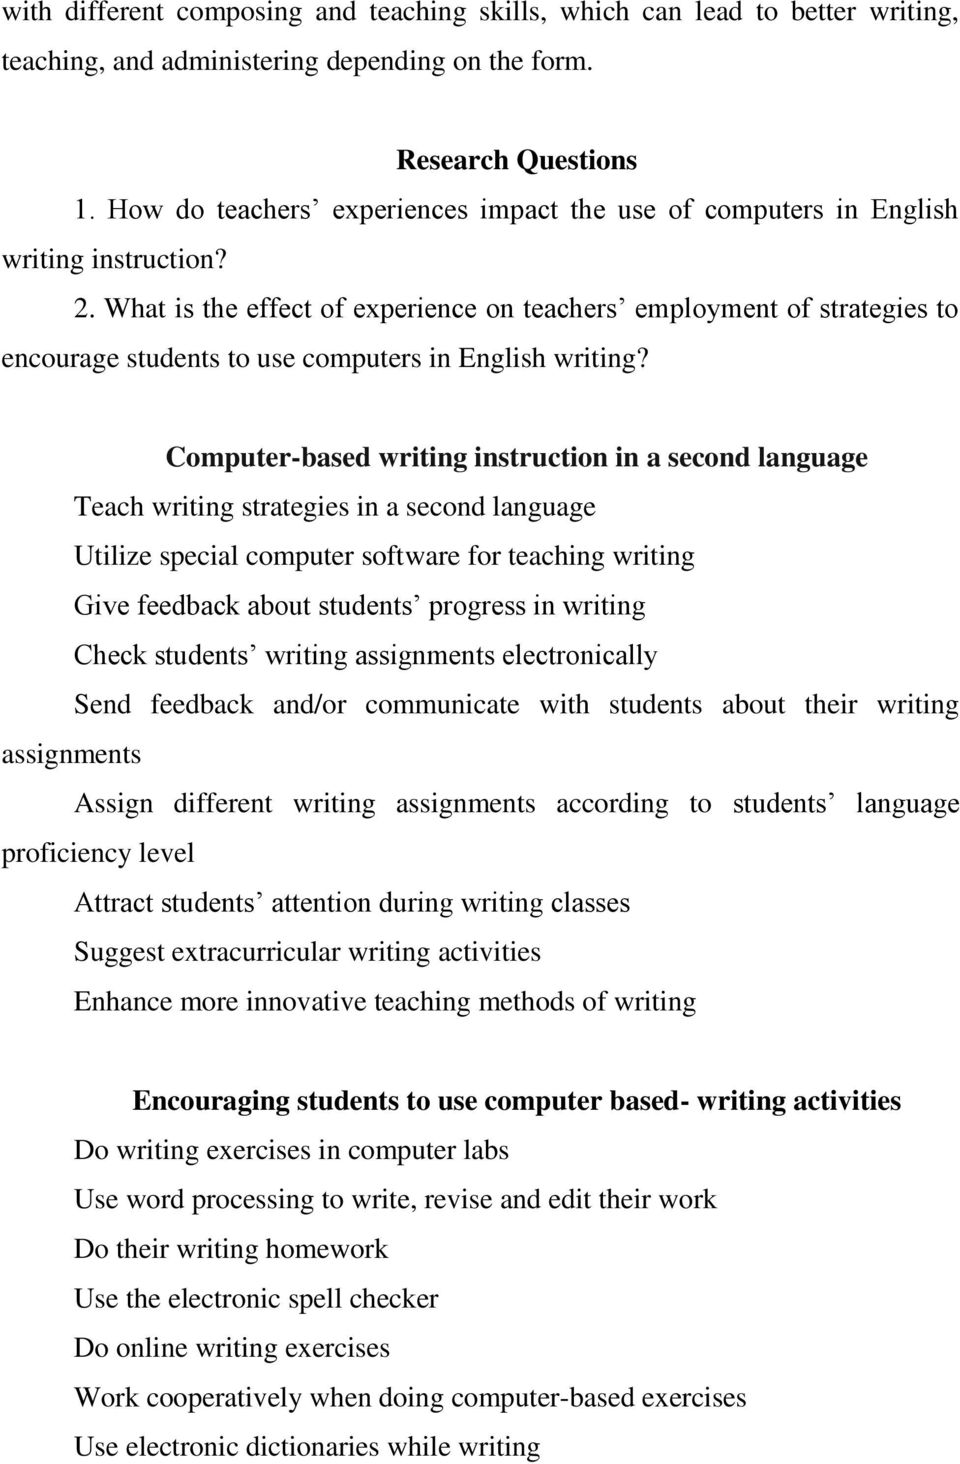 What is the effect of experience on teachers employment of strategies to encourage students to use computers in English writing?